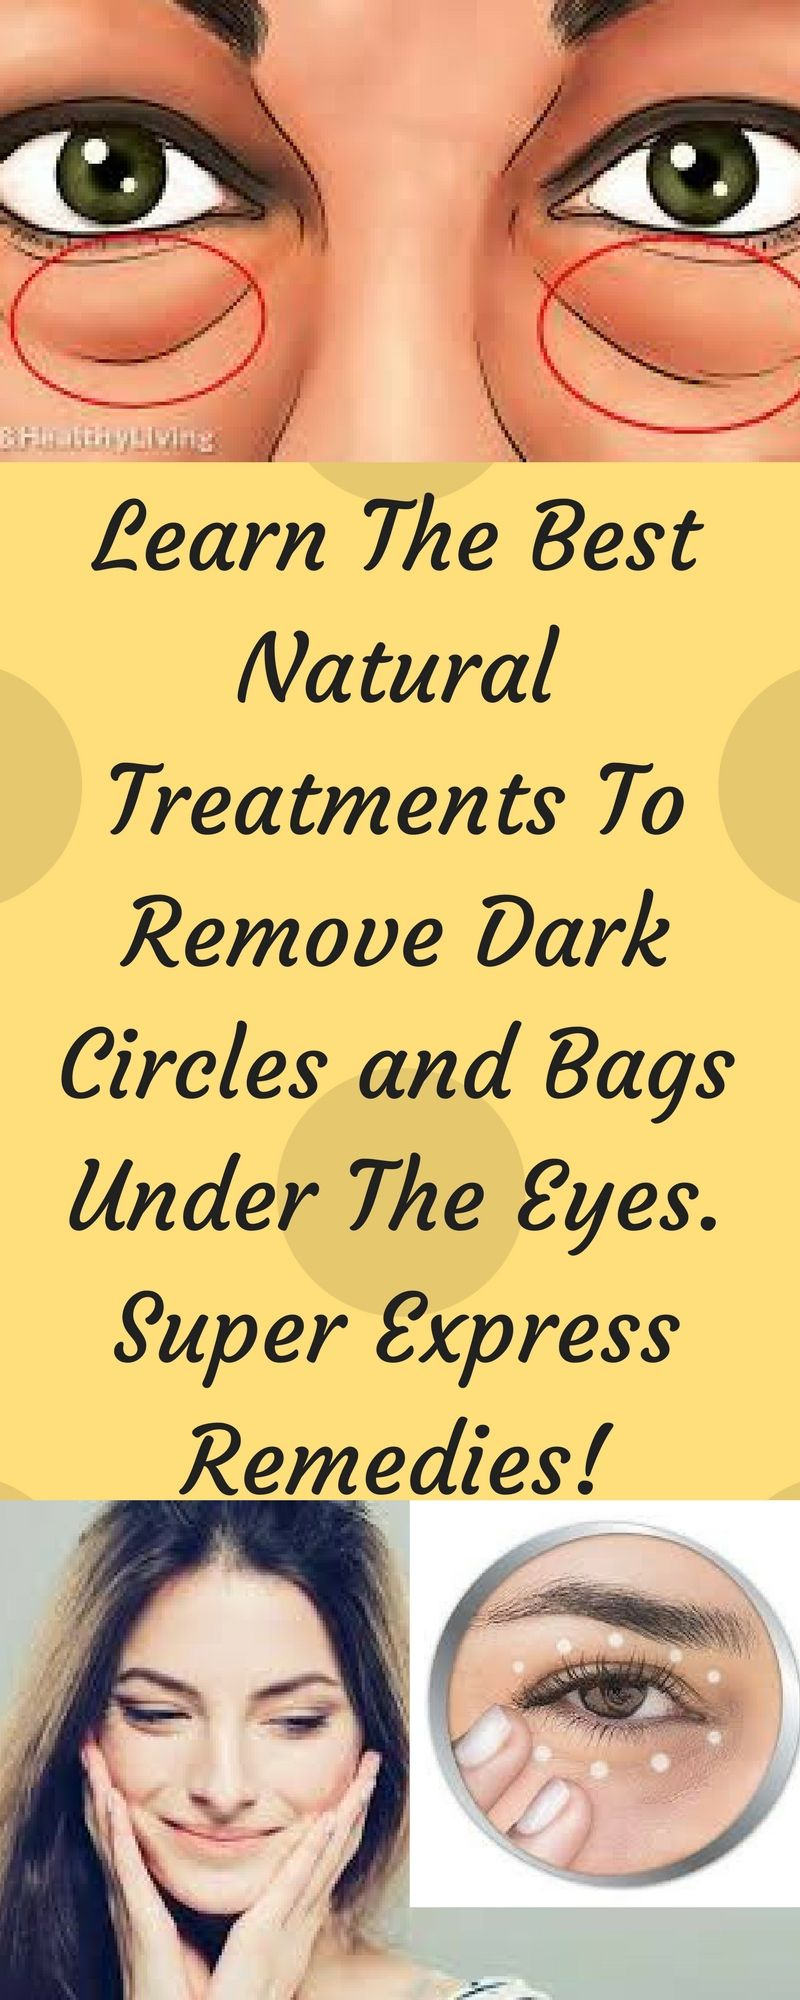 how to get rid of sunken eyes permanently